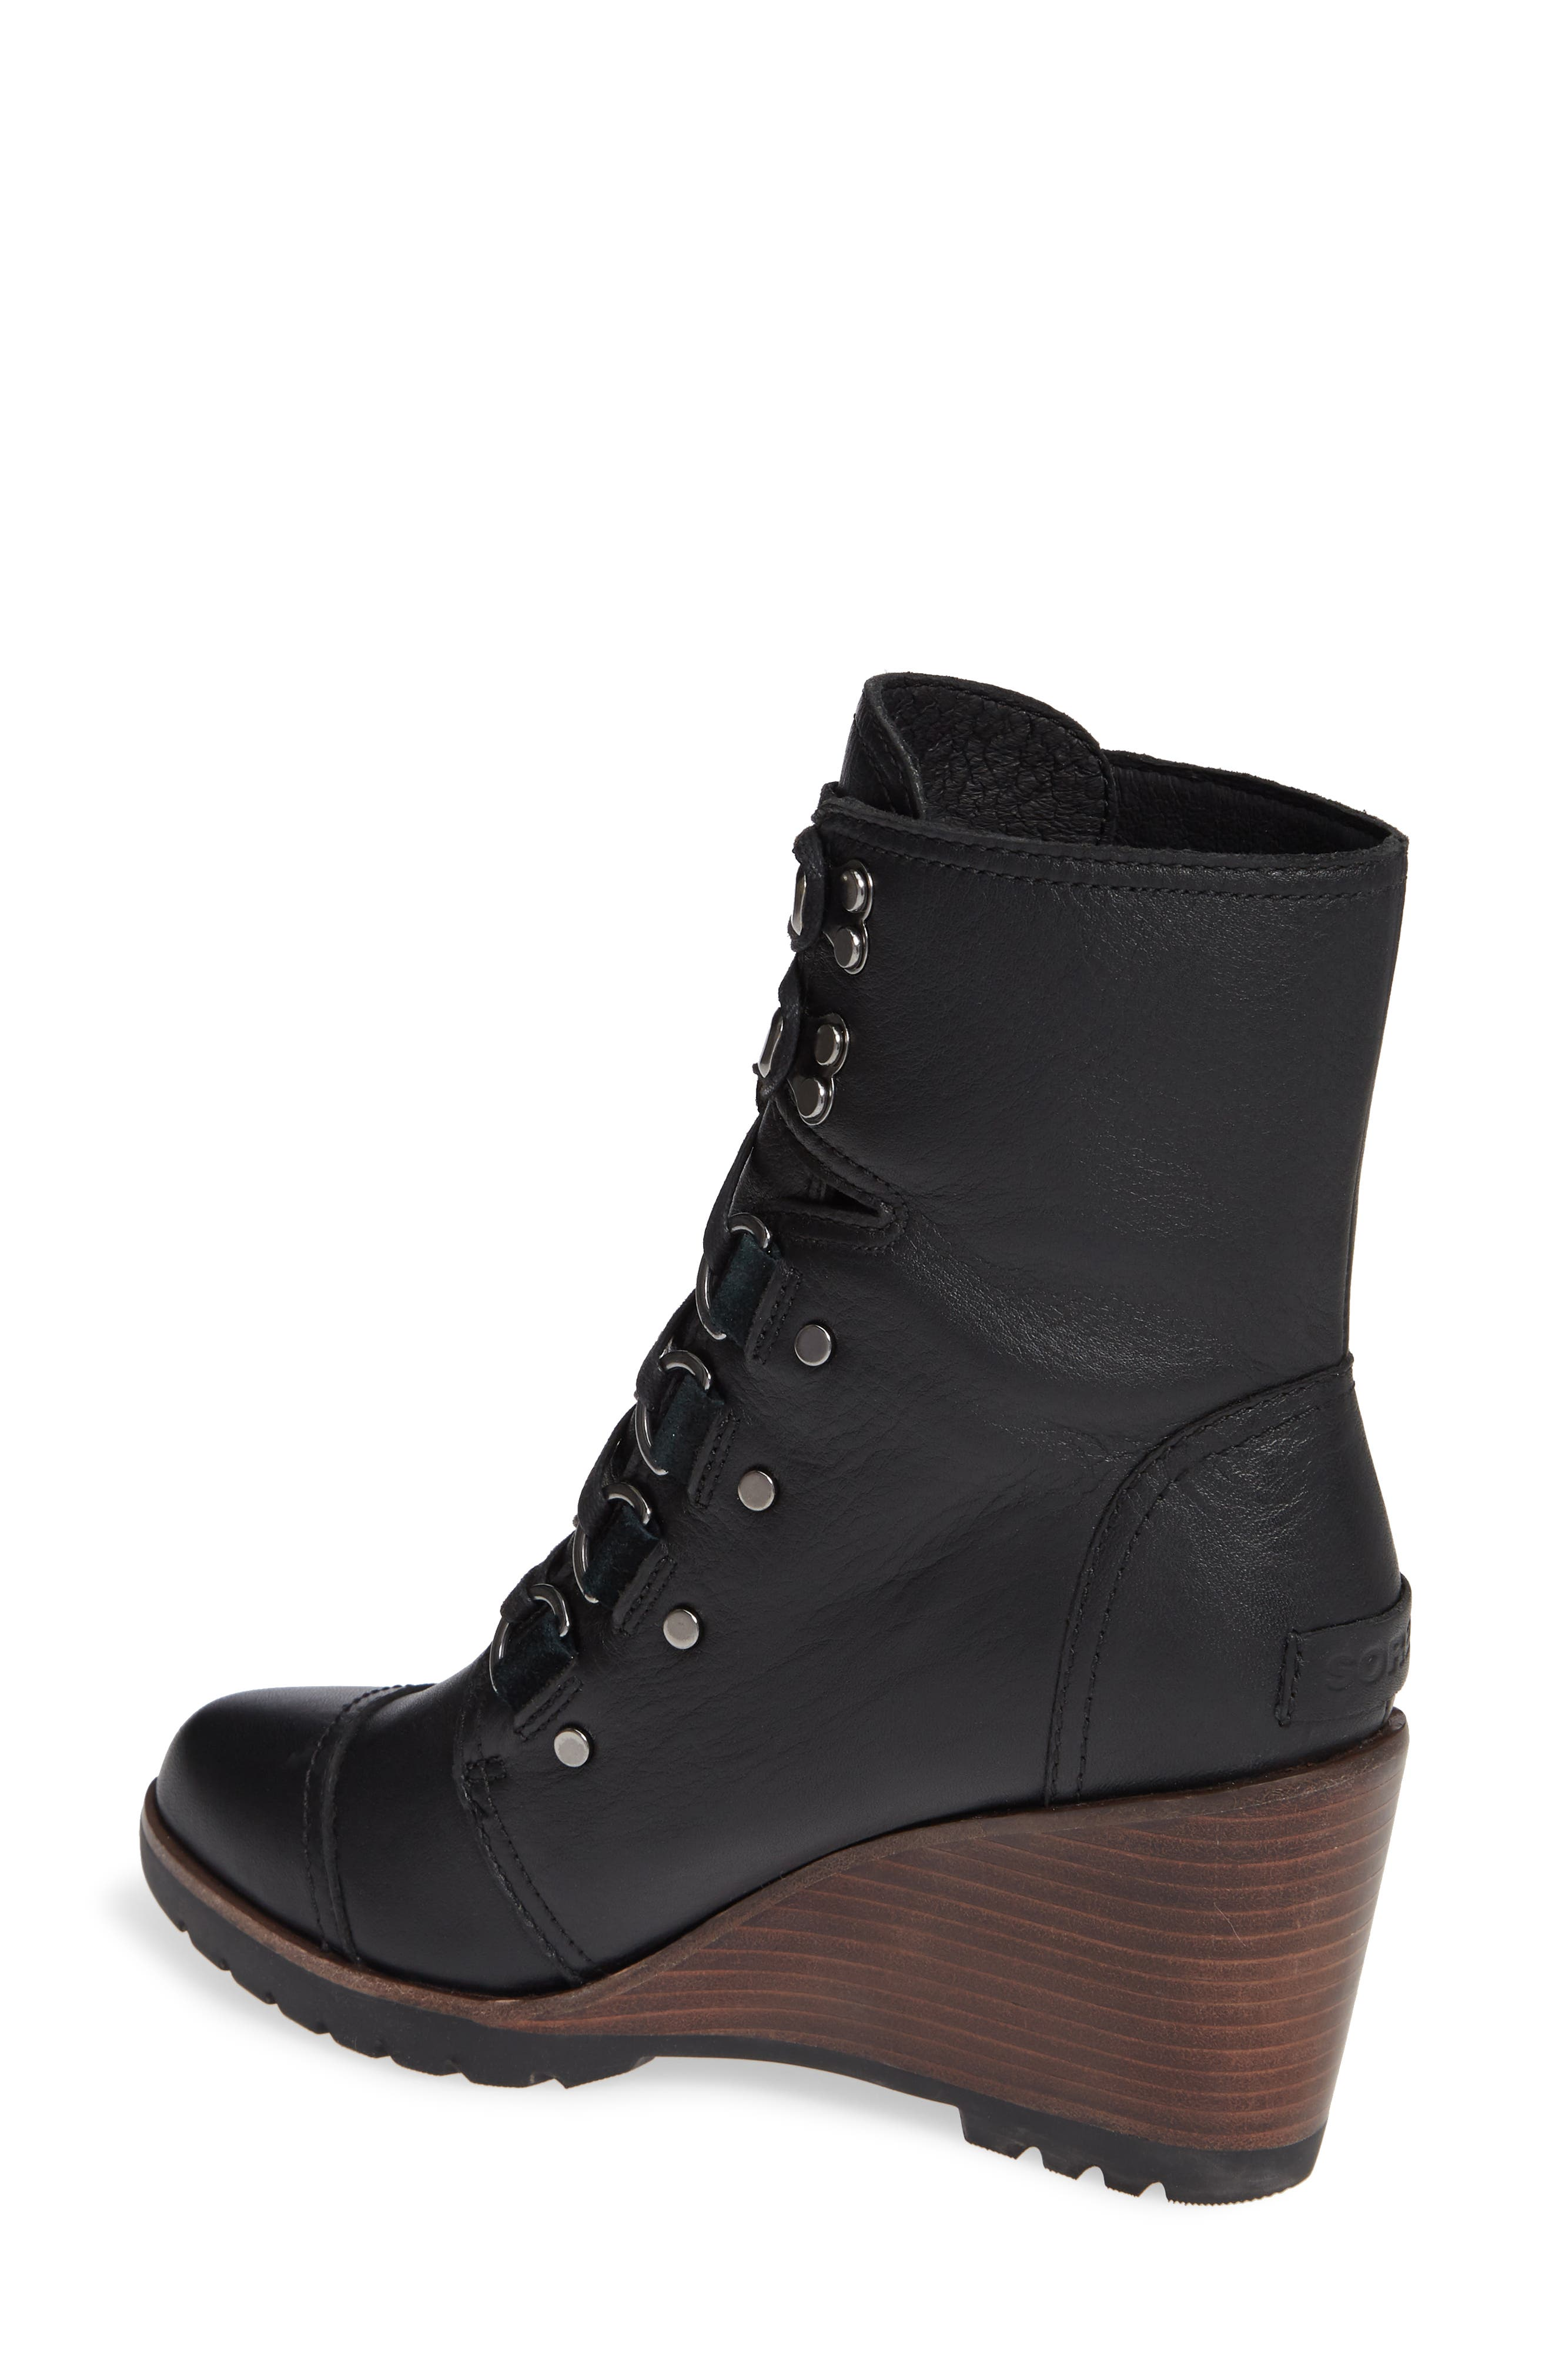 After Hours Lace-Up Waterproof Boot,                             Alternate thumbnail 2, color,                             010